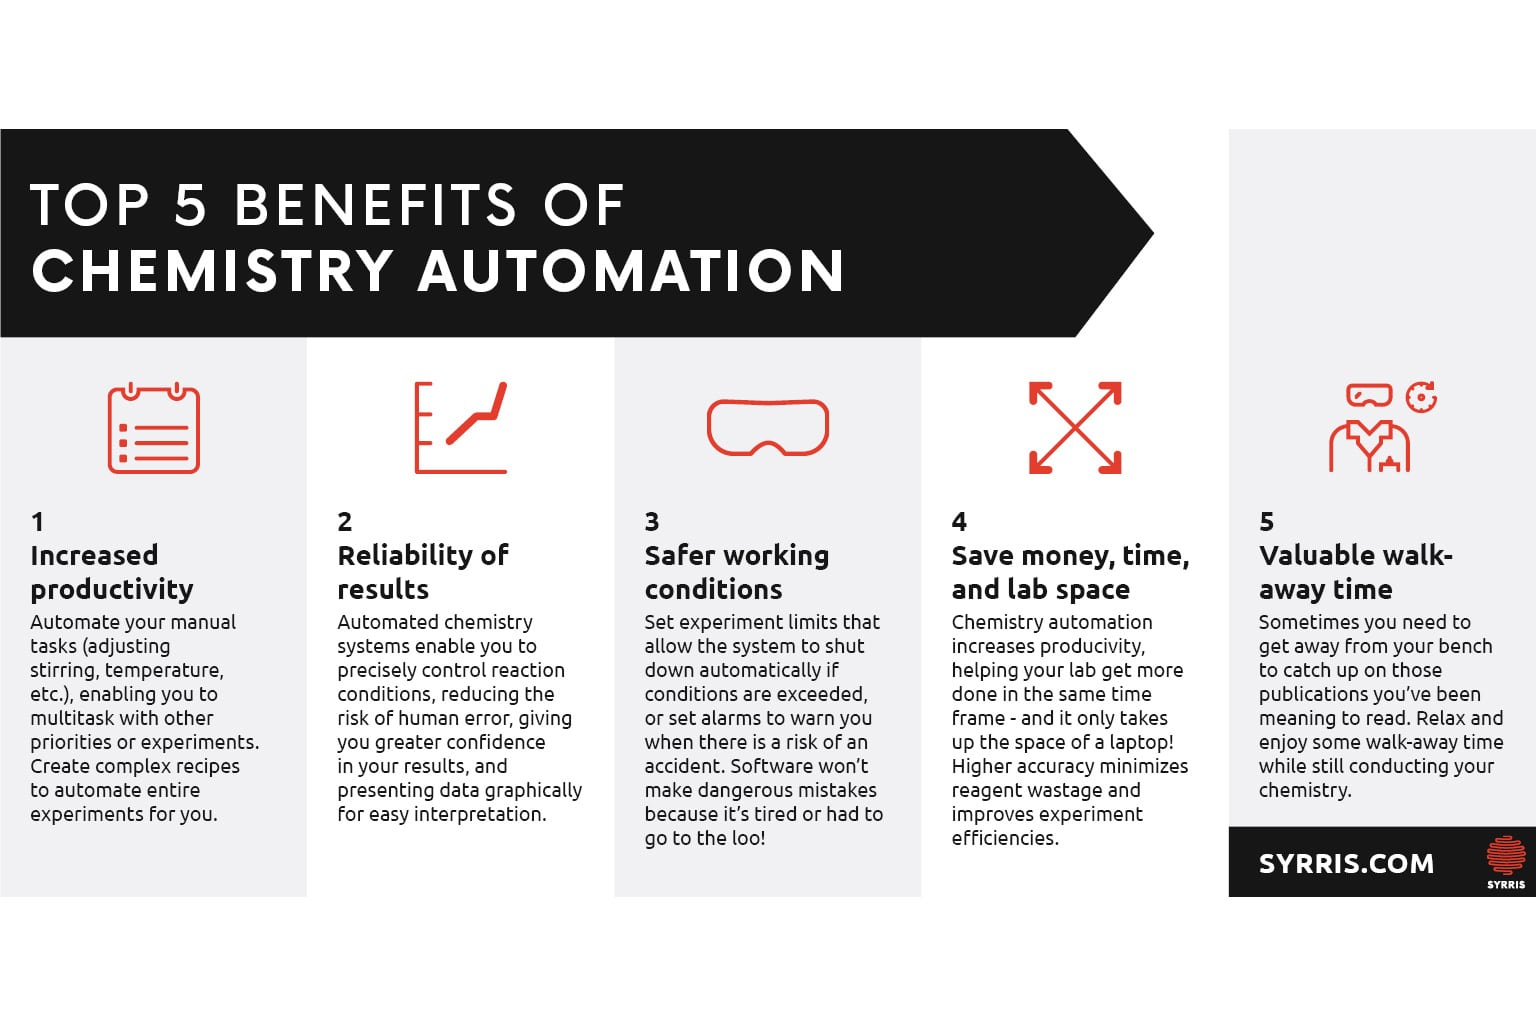 5 benefits of automated chemistry systems